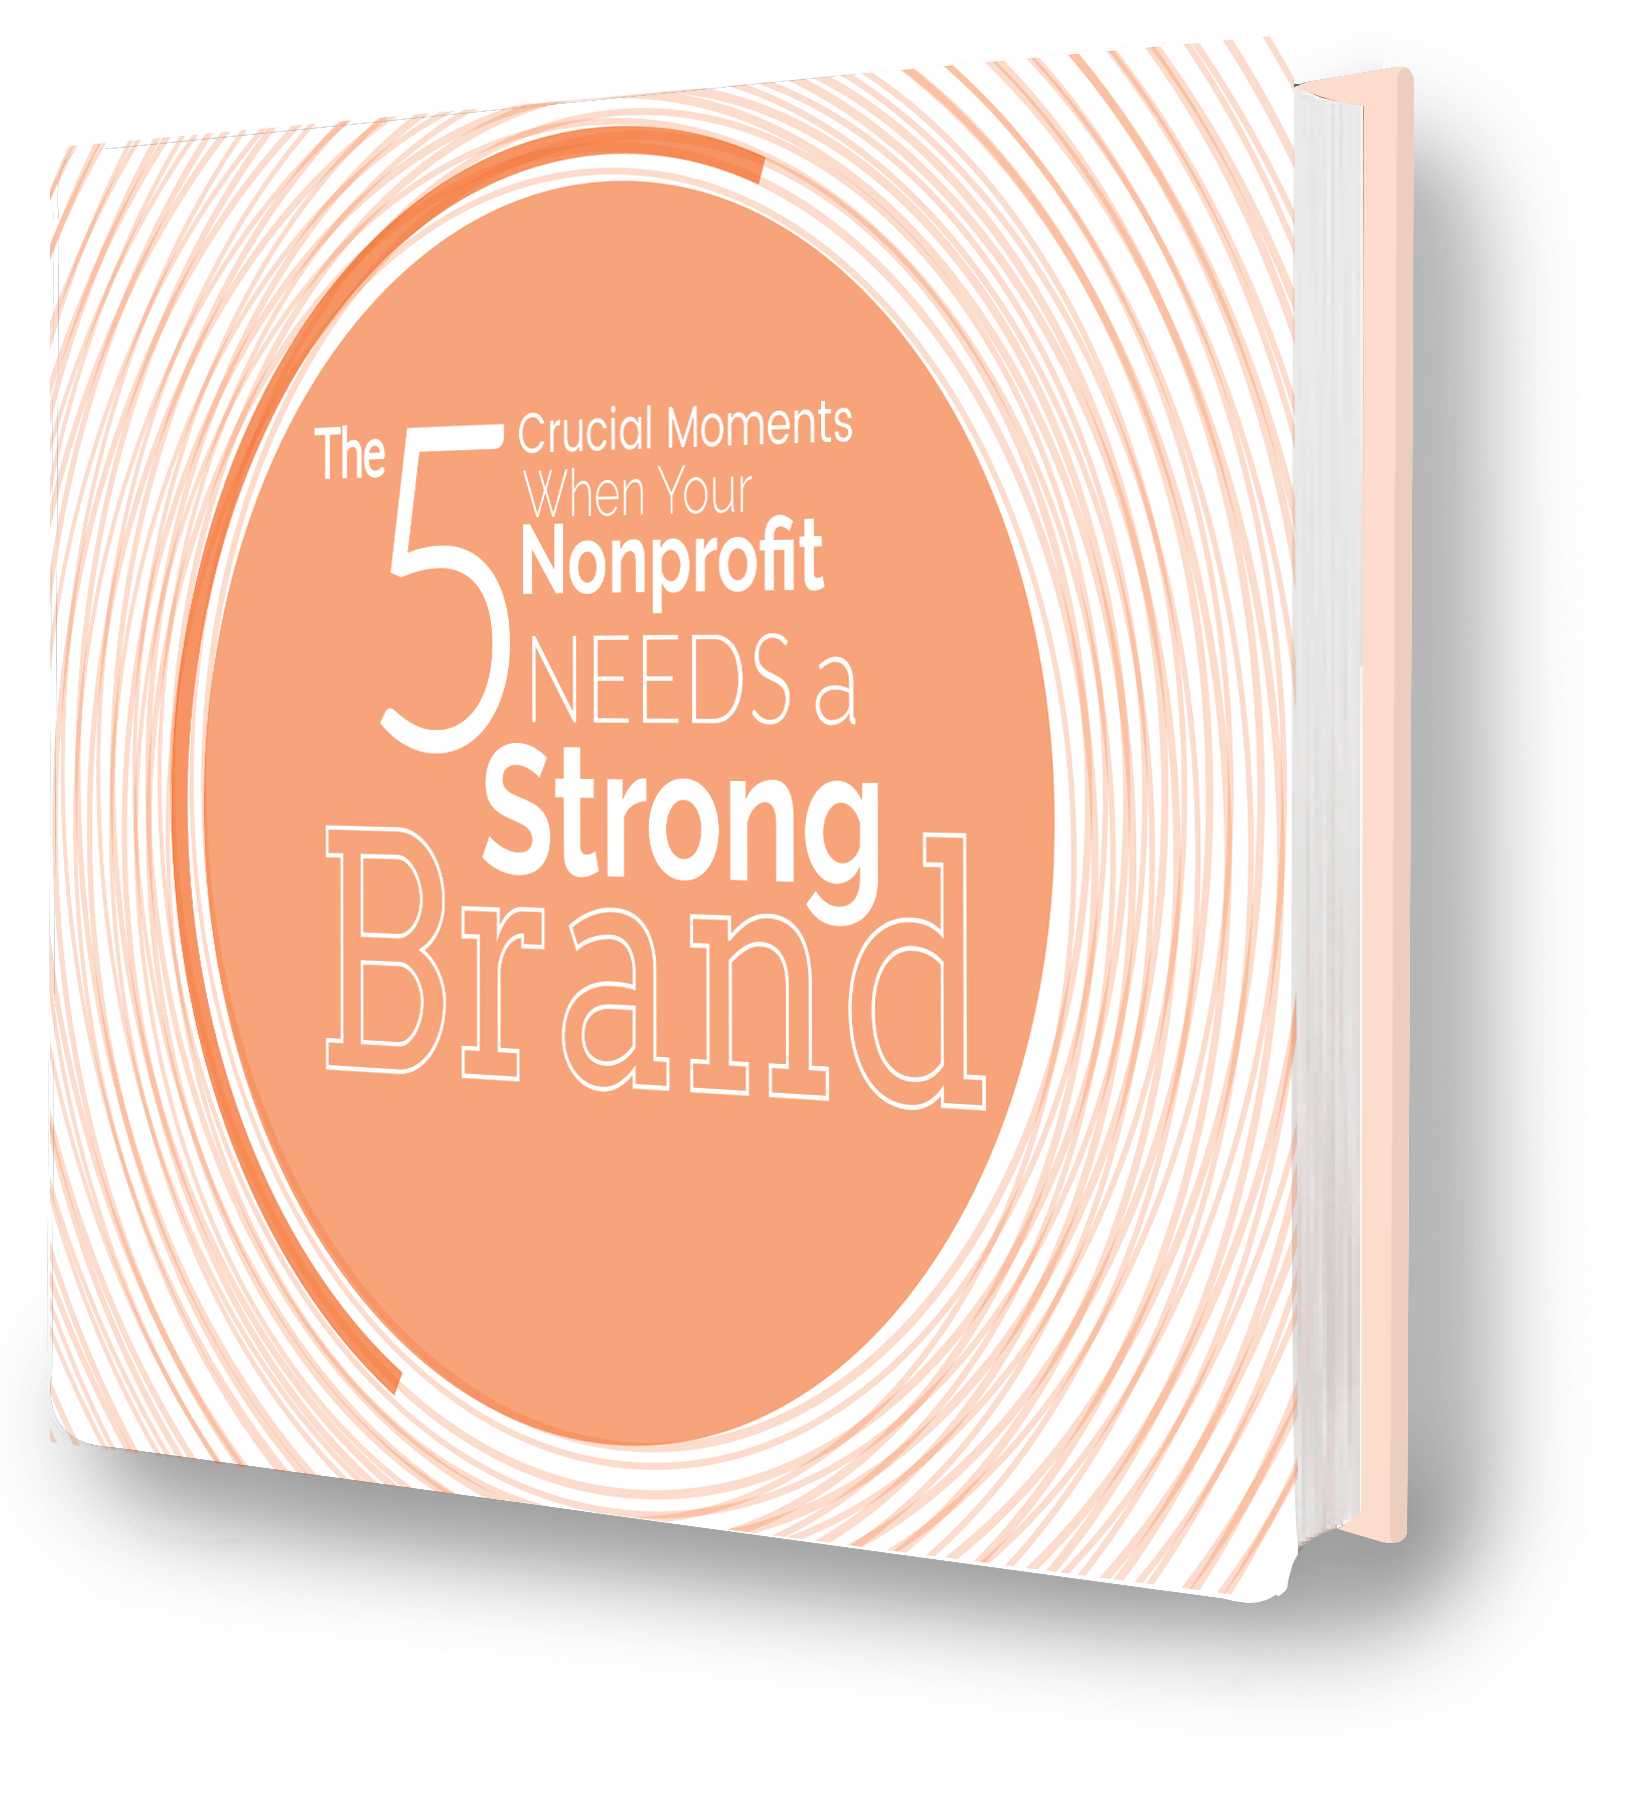 the cover of the 5 Crucial Moments When Your Nonprofit Needs a Strong Brand eBook